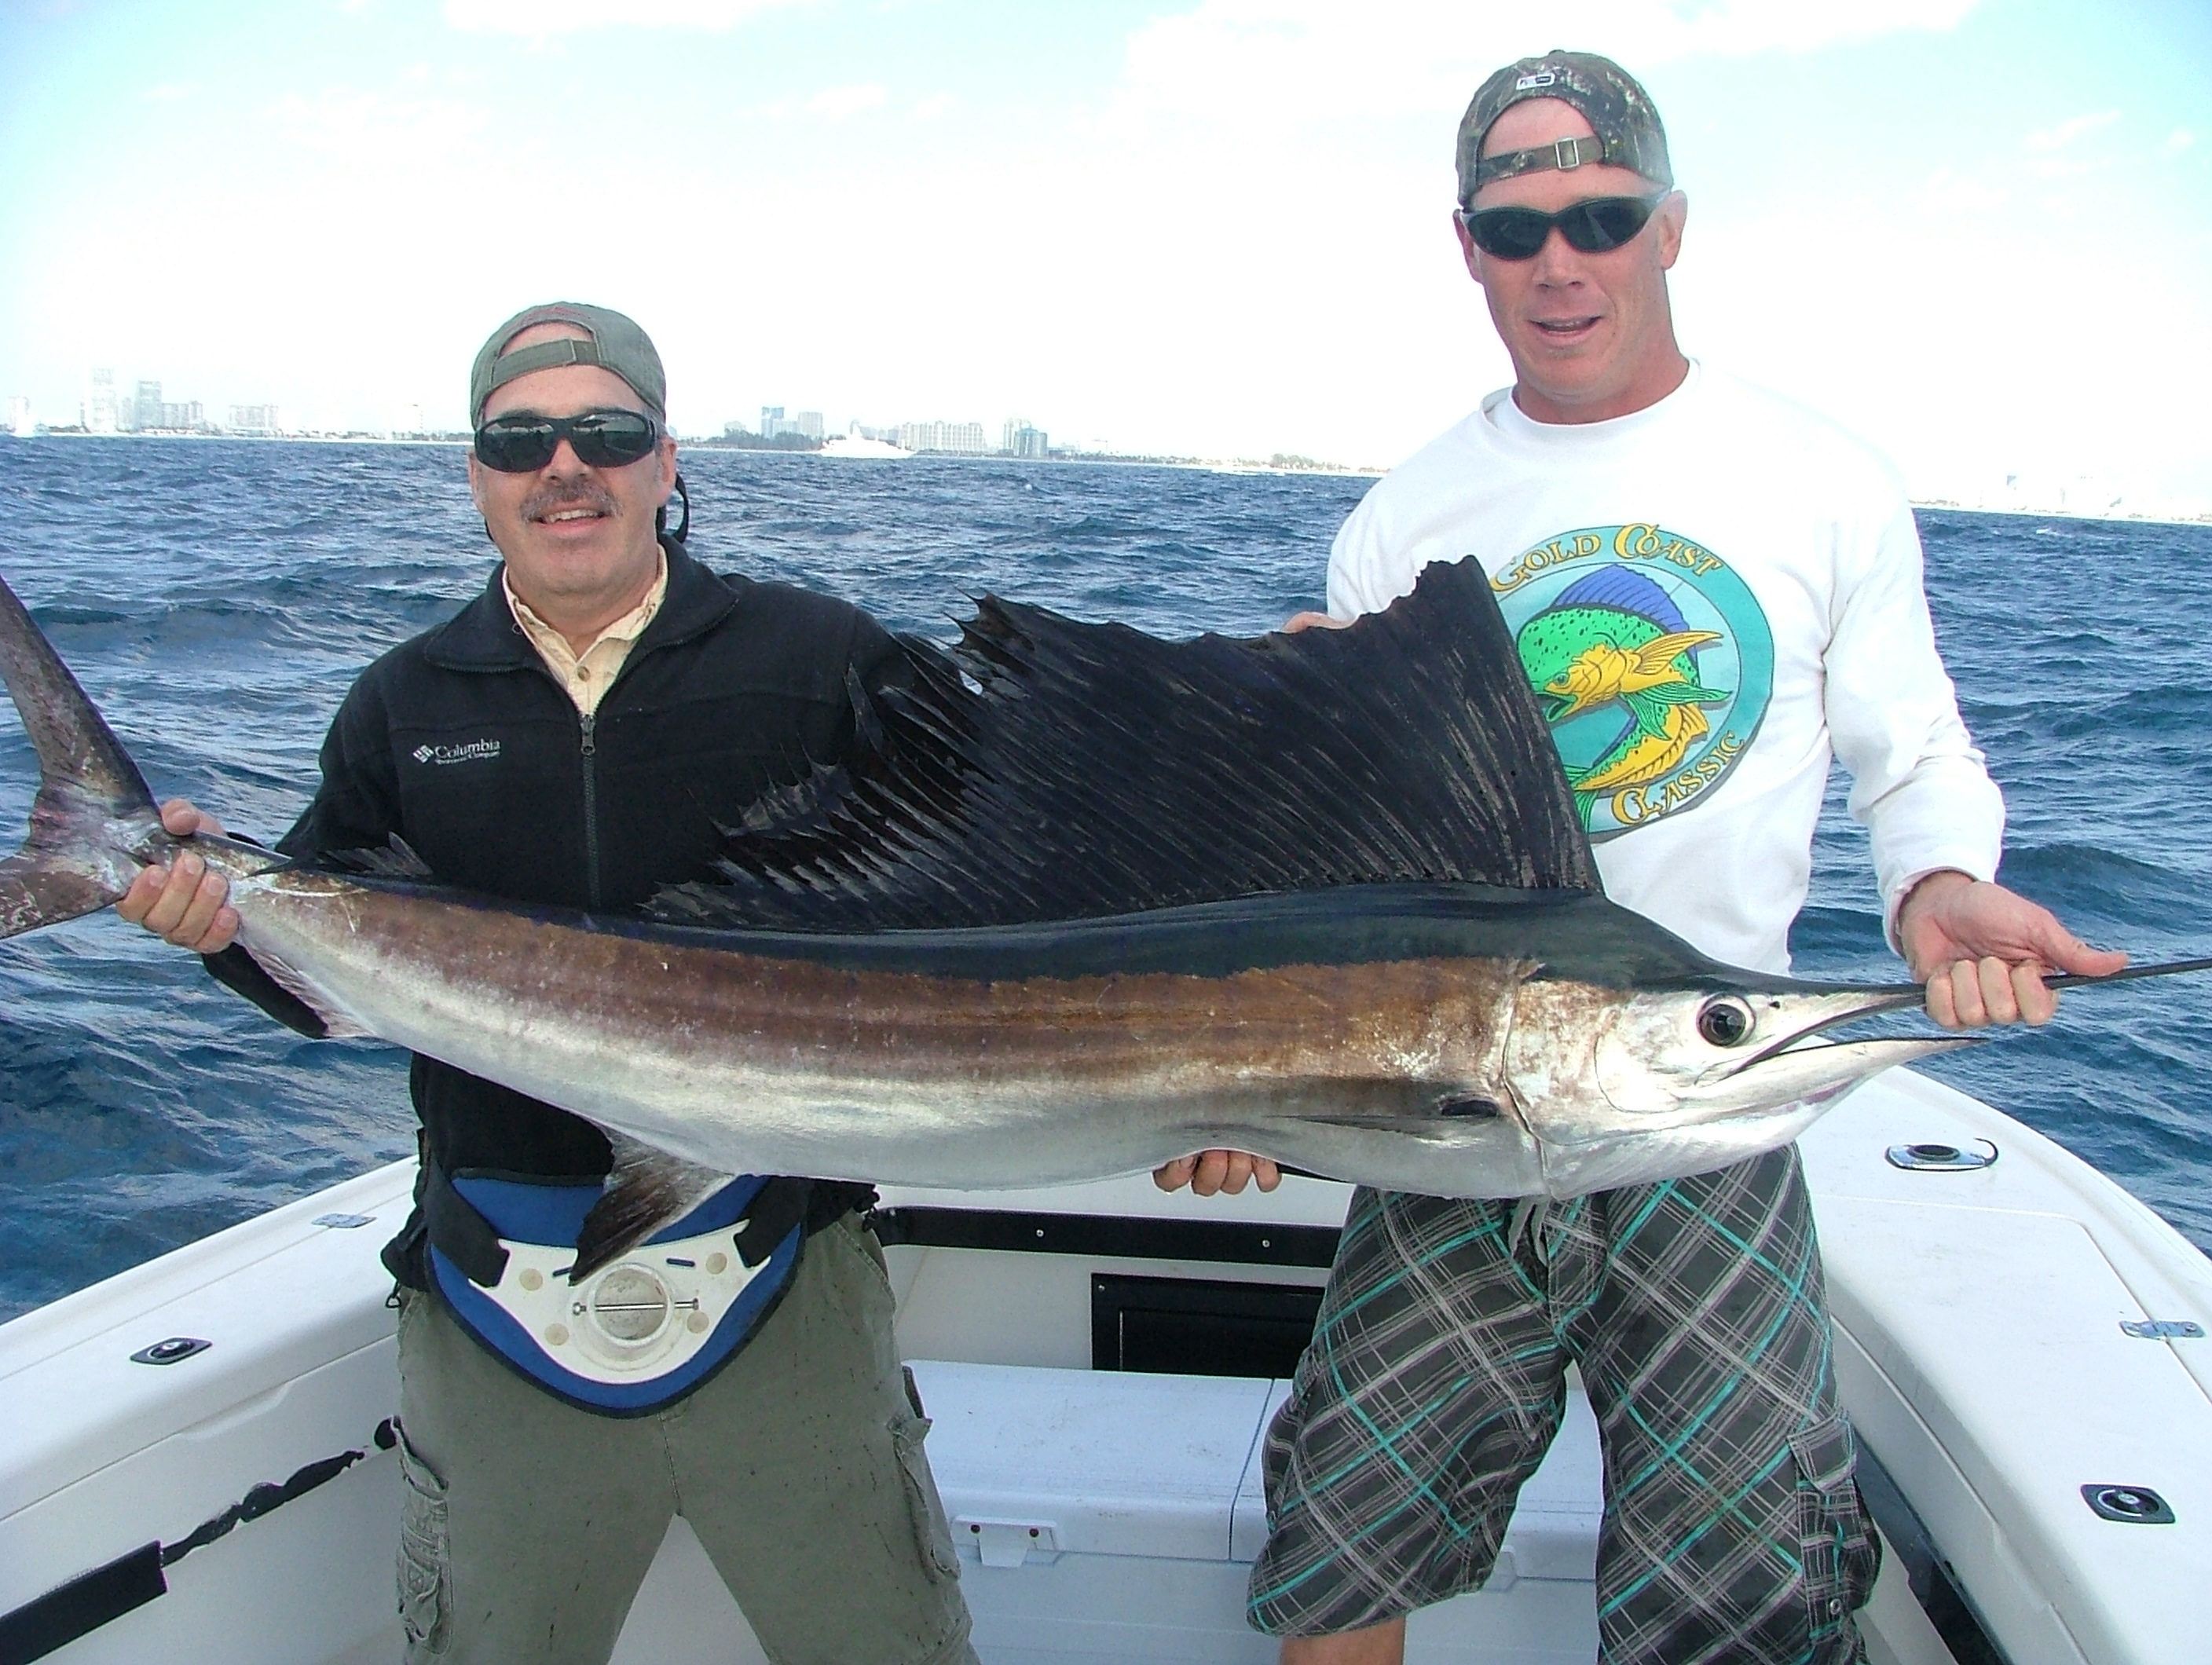 Fort lauderdale fishing fort lauderdale fishing reports for Ft lauderdale fishing charters